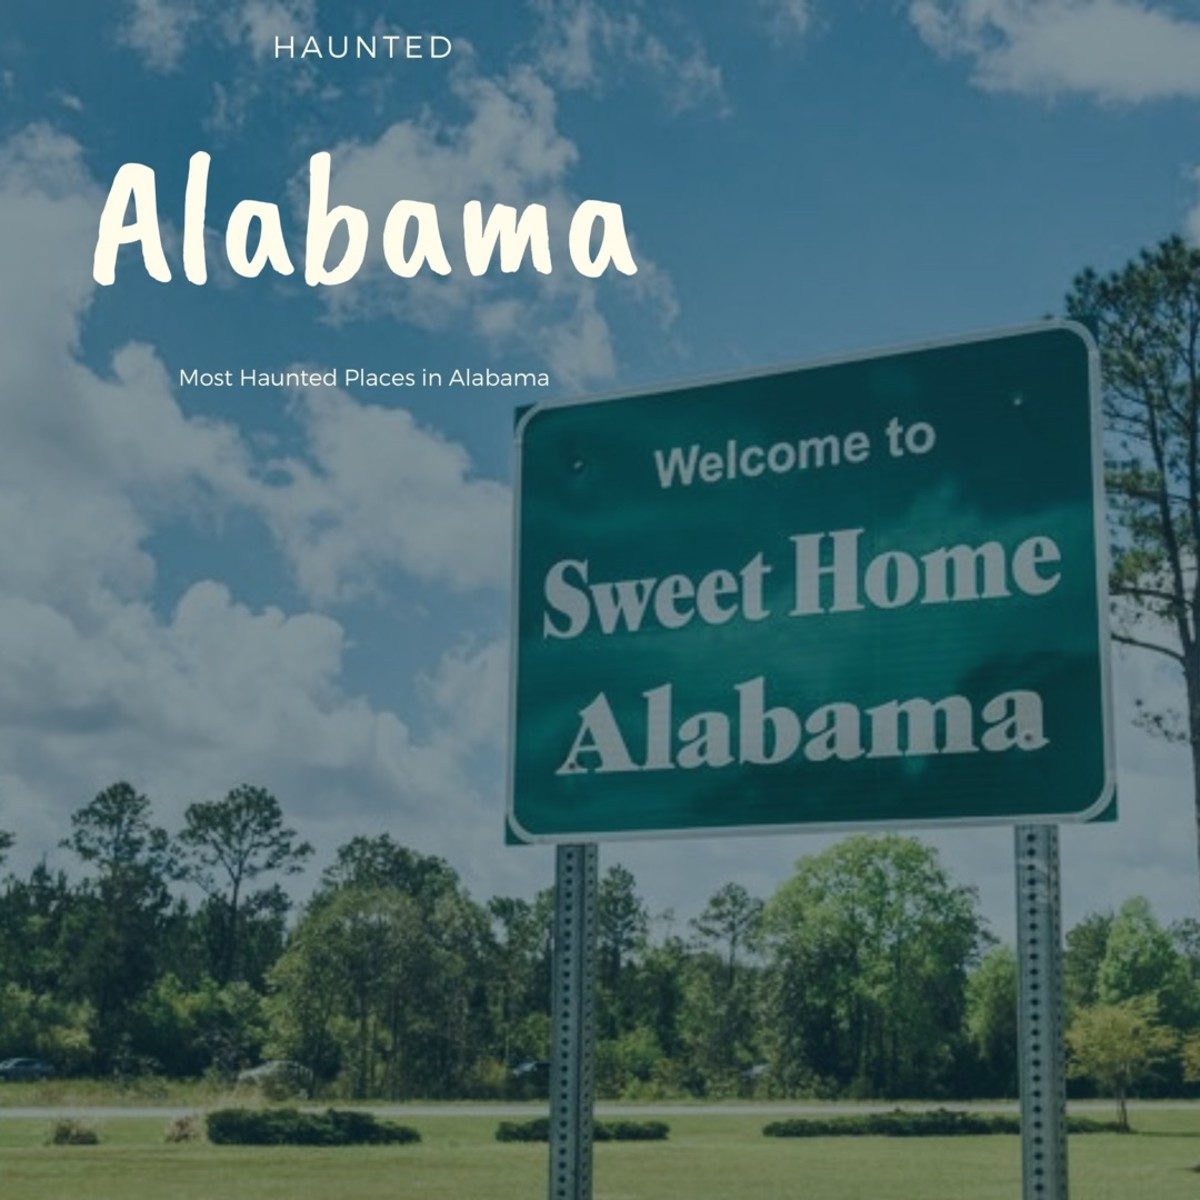 Best Haunted Places to Visit in Alabama